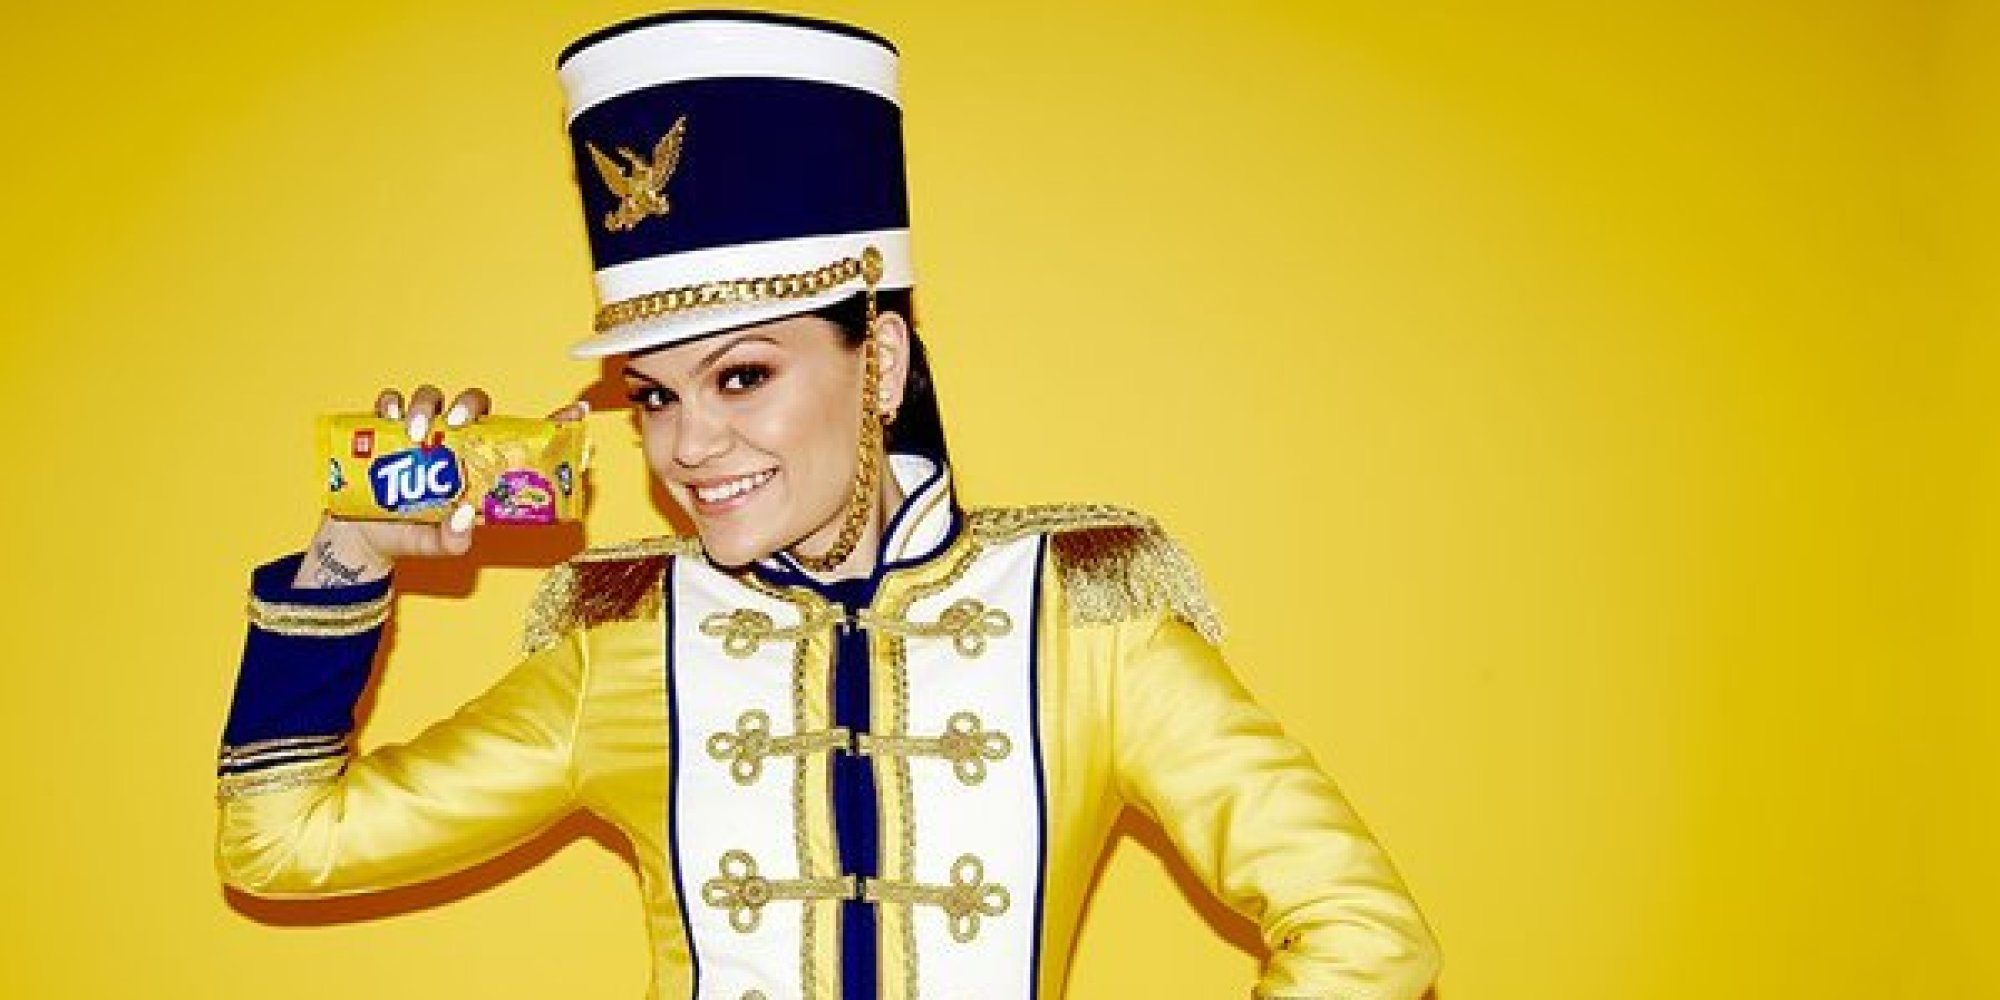 TUC FEED YOUR RHYTHM Jessie J